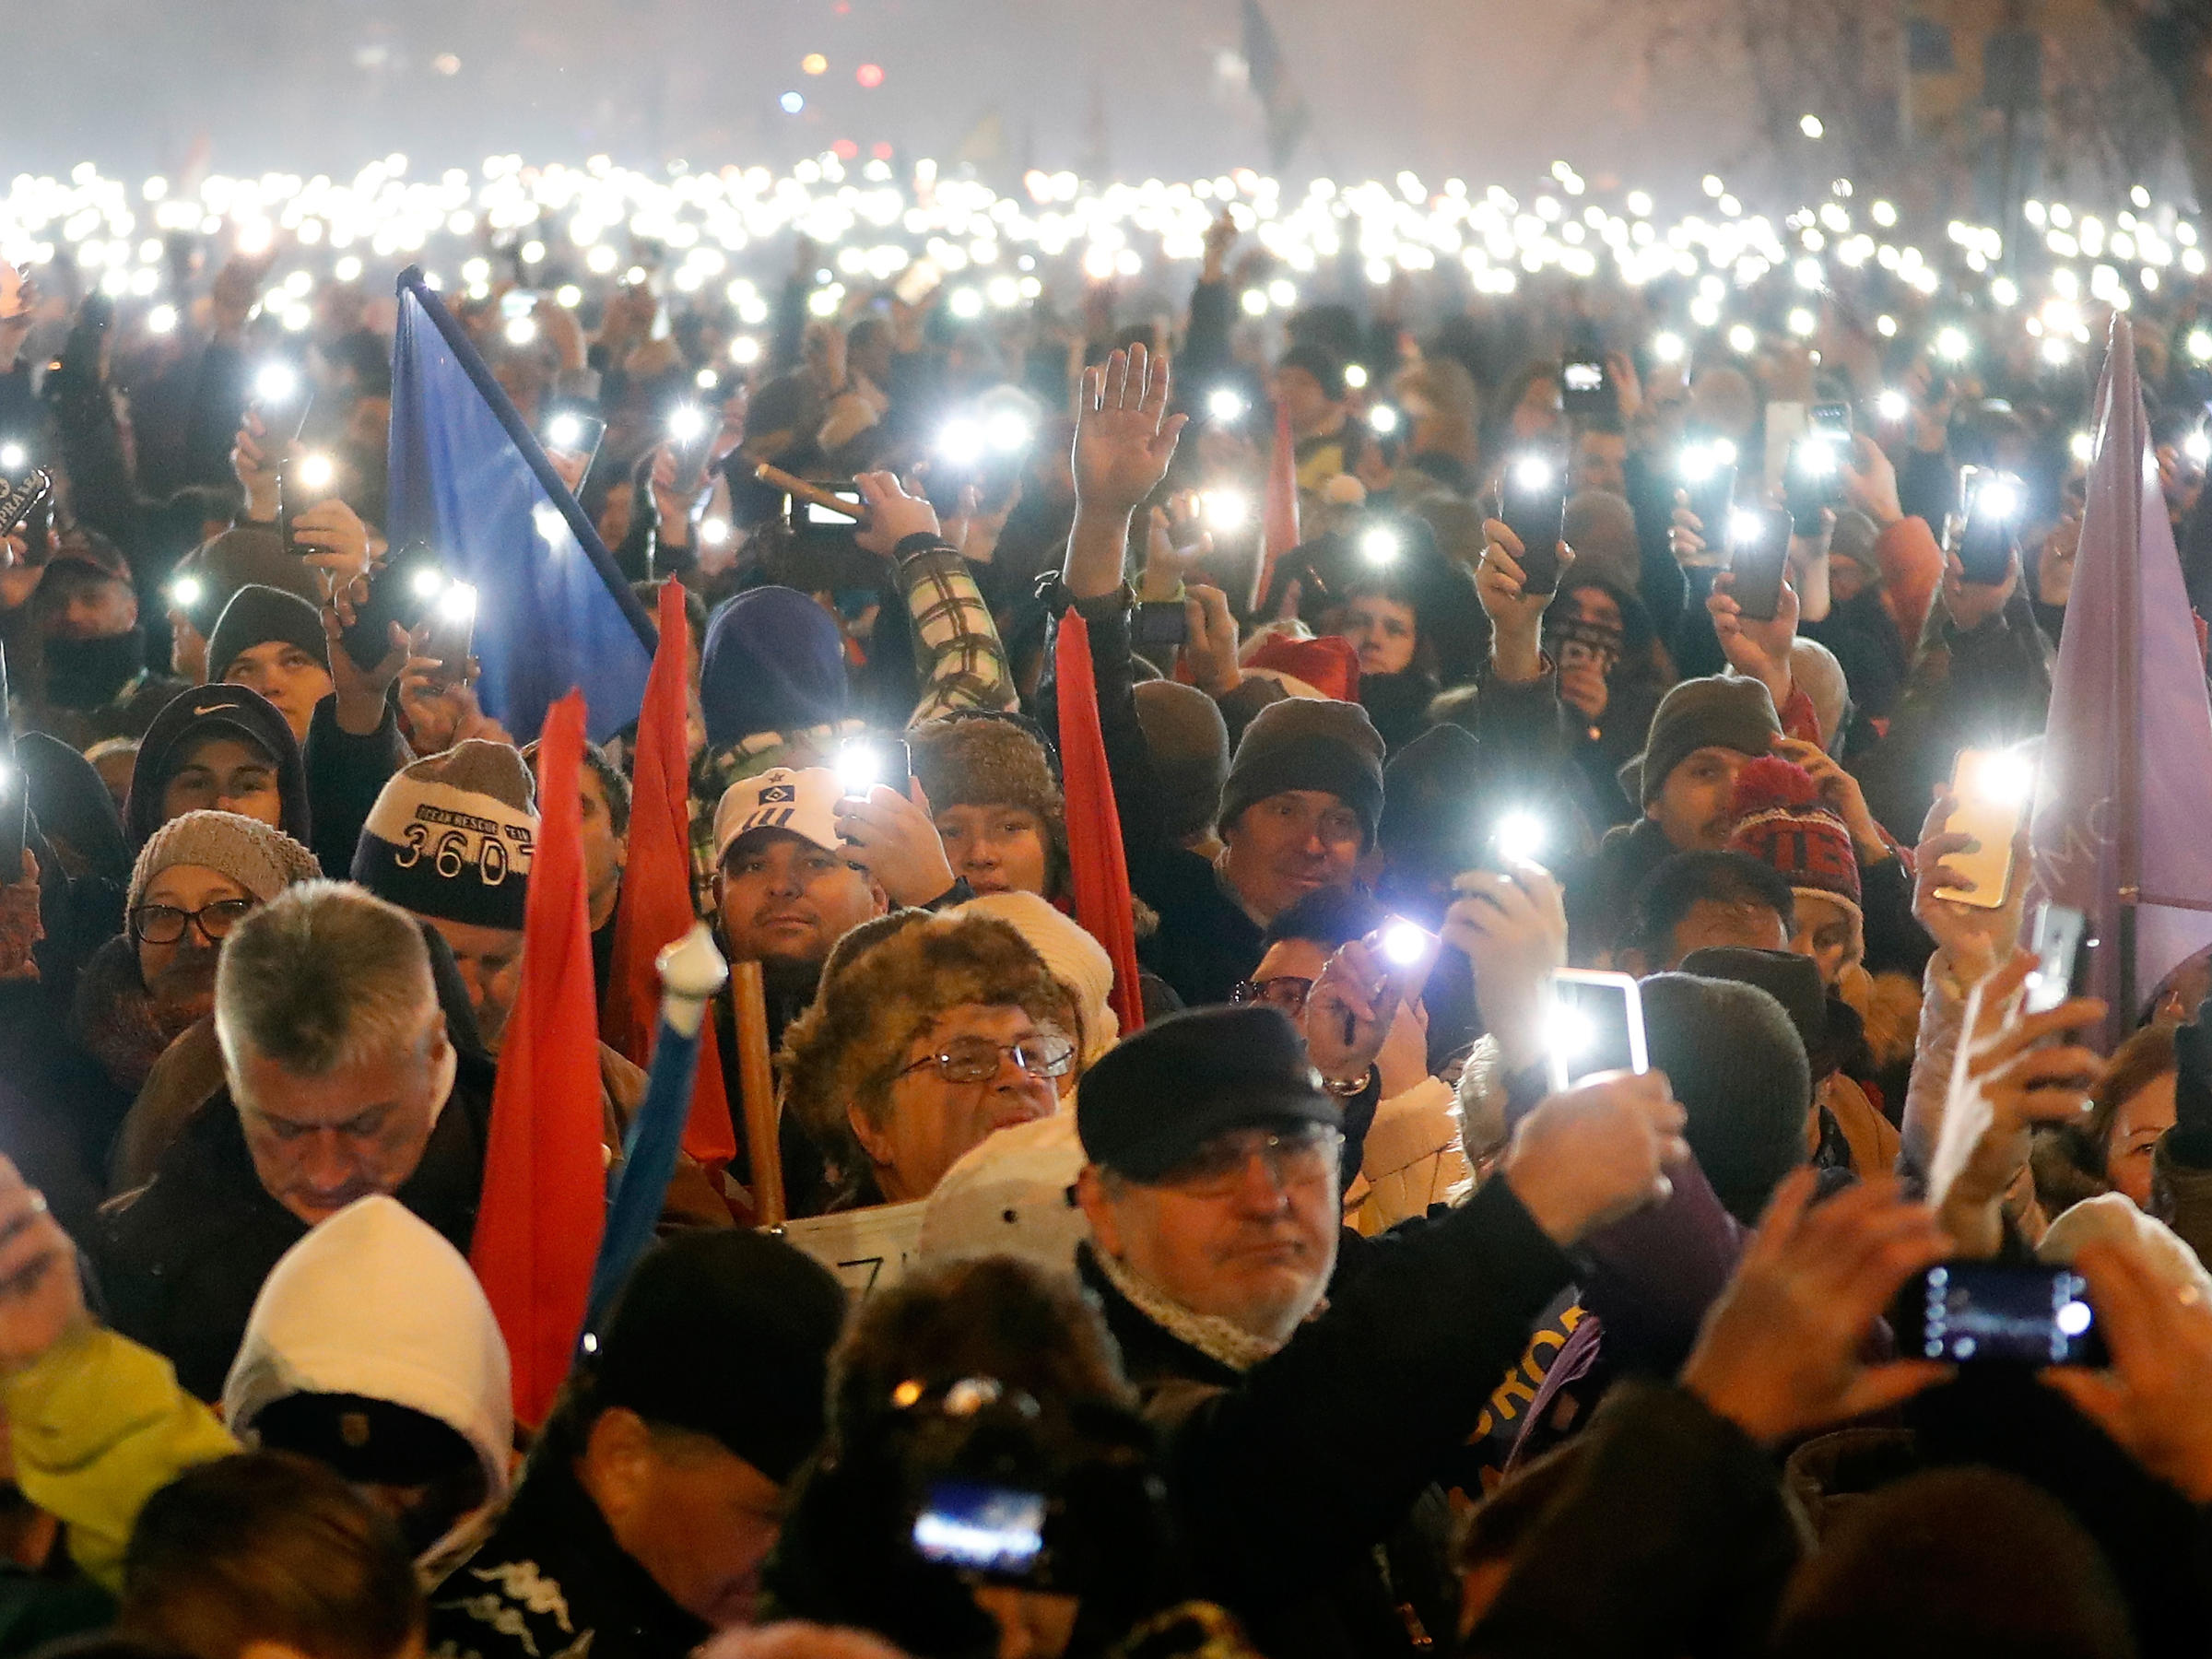 #FactOfTheDay 17/12/18 – Hungary: thousands protest against Viktor Orban's governement